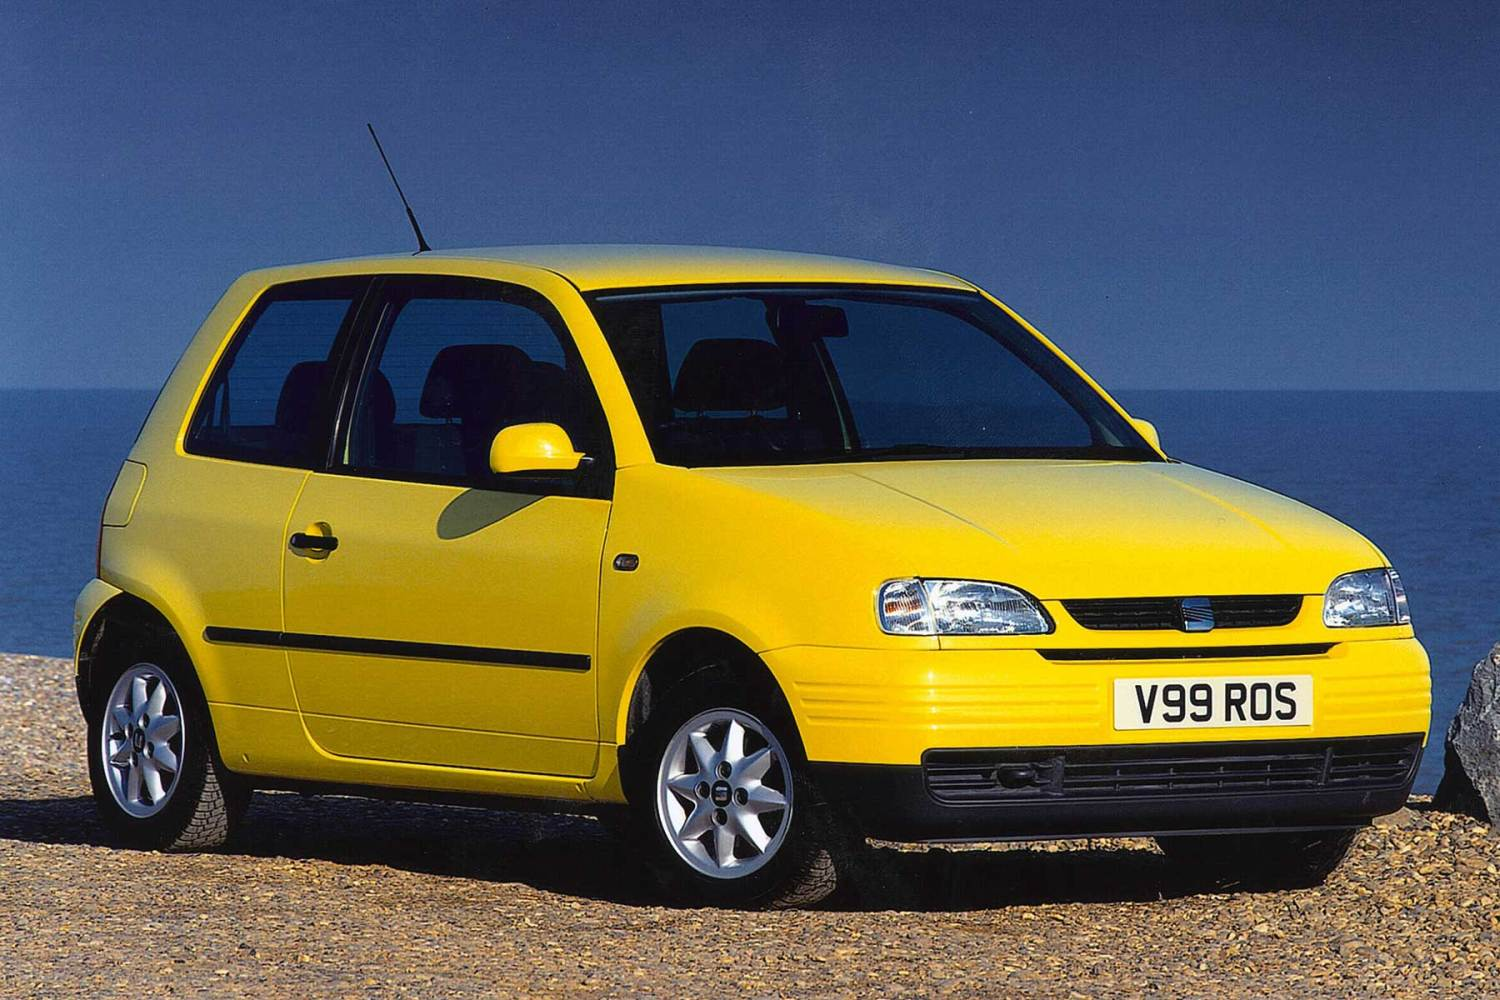 The cheapest cars to insure for 17-18 year olds: SEAT Arosa